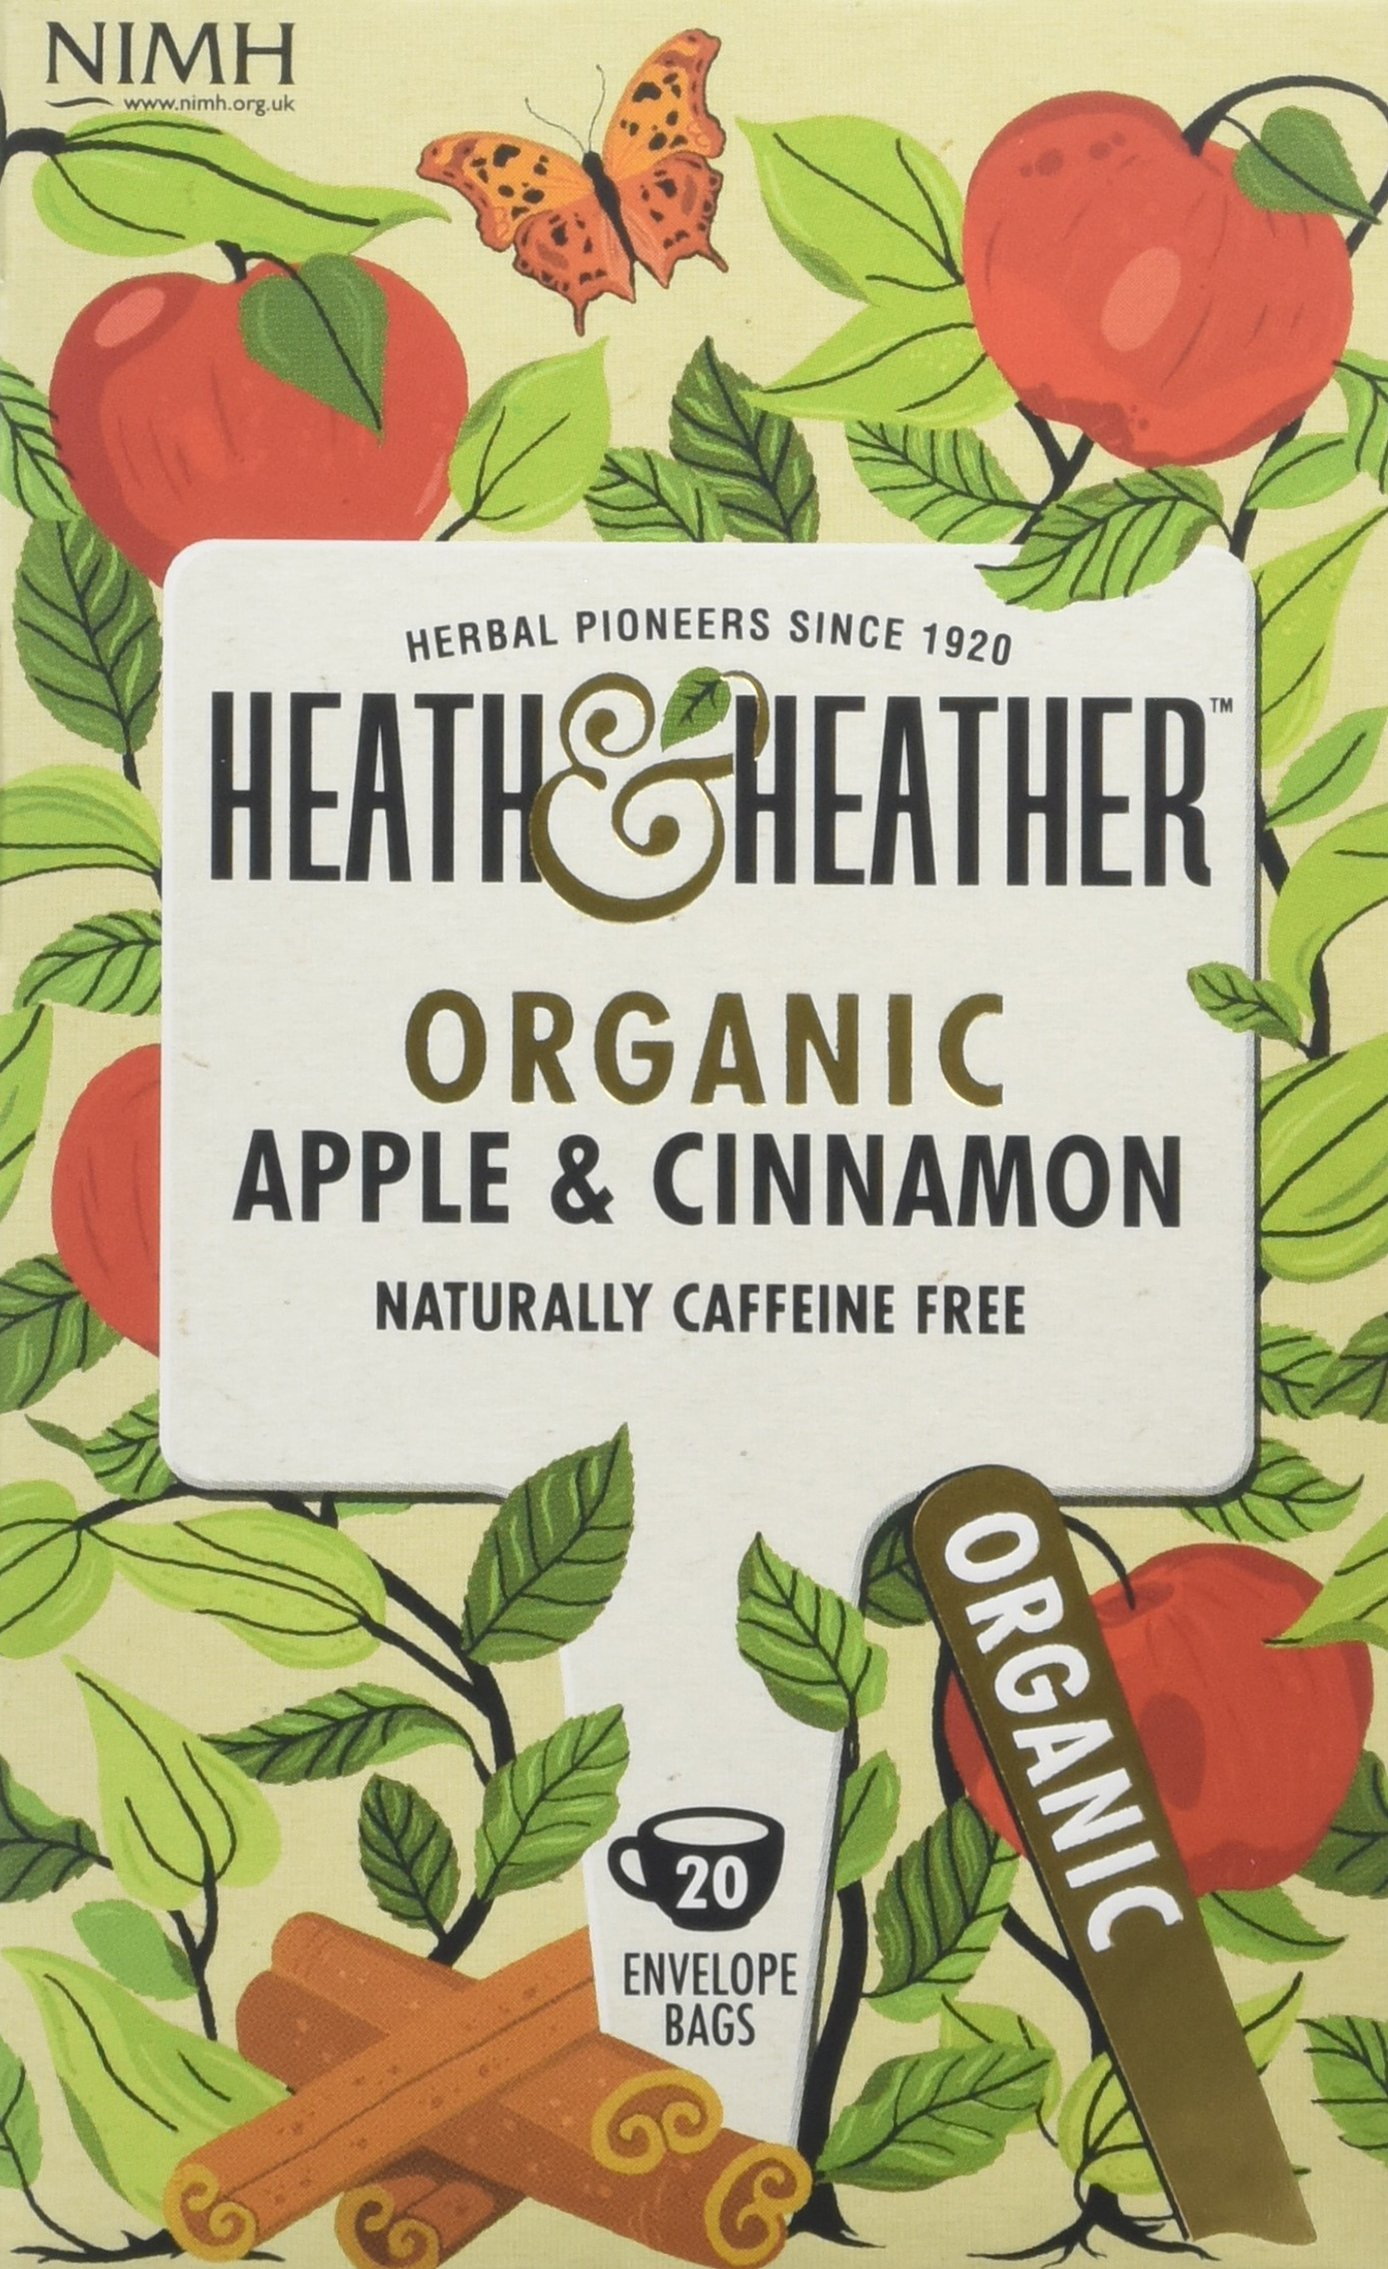 Heath & Heather apple and cinnamon tea bundle (soil association) (infusions) (6 packs of 20 bags) (120 bags) (a fruity, spicy tea with aromas of apple, cinnamon) (brews in 3-5 minutes)